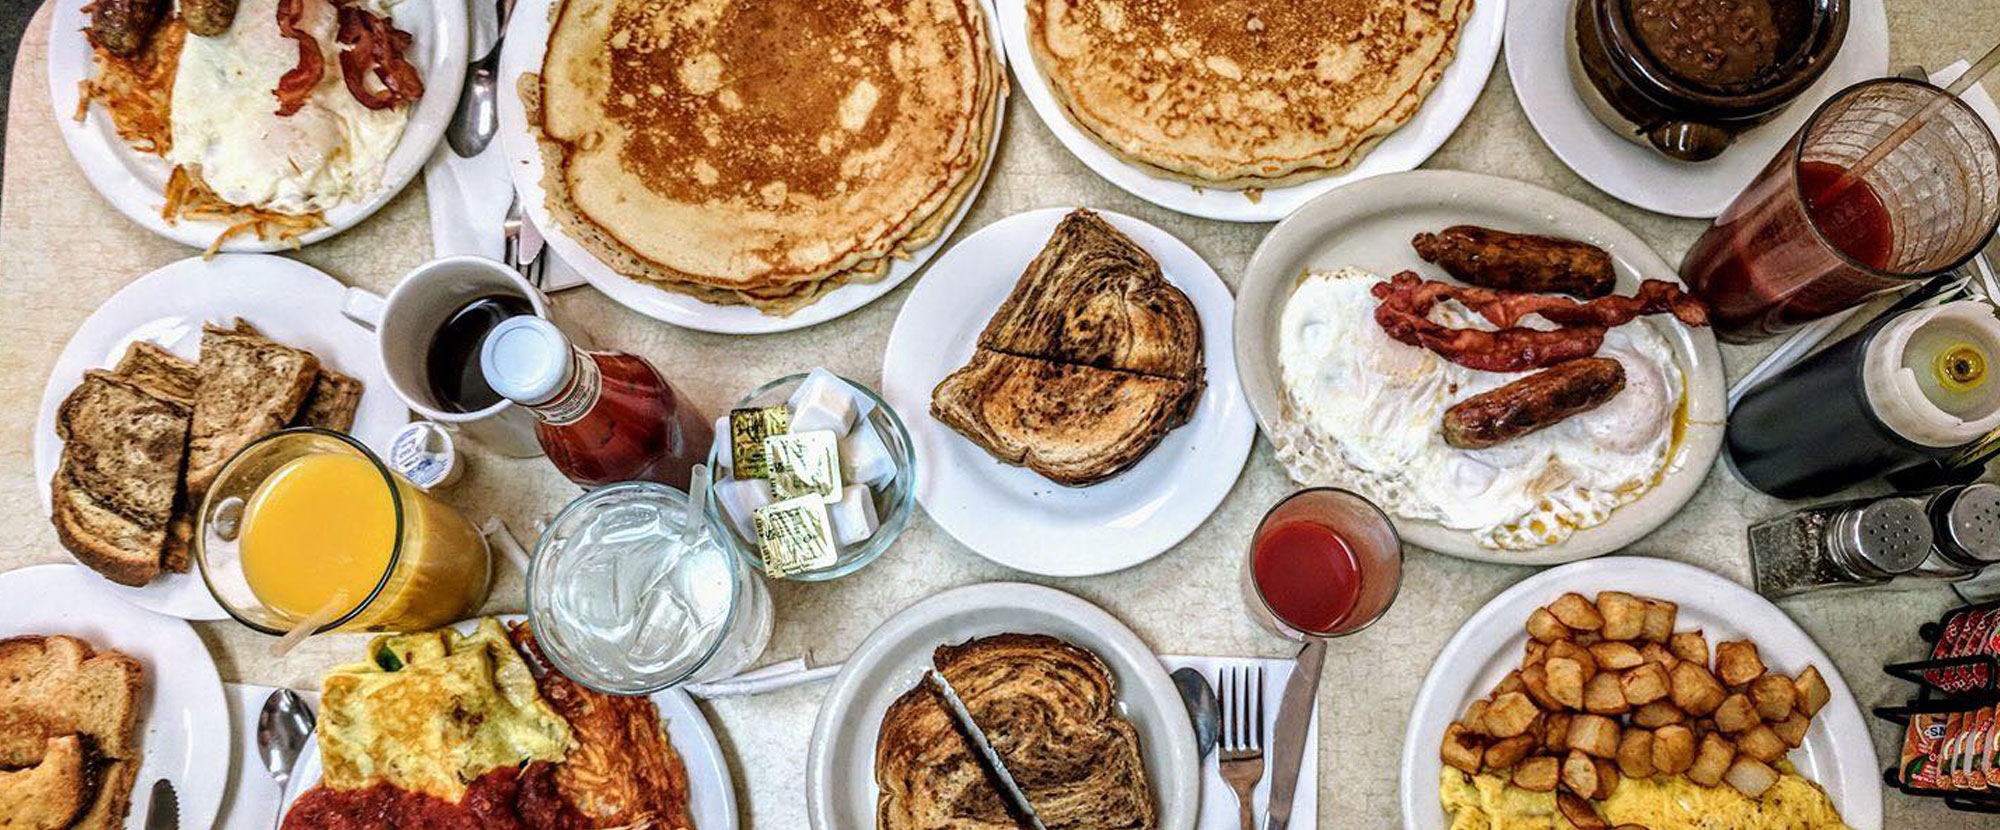 Diner Breakfast Lunch Manchester Nh The Bagg Lunch Llc